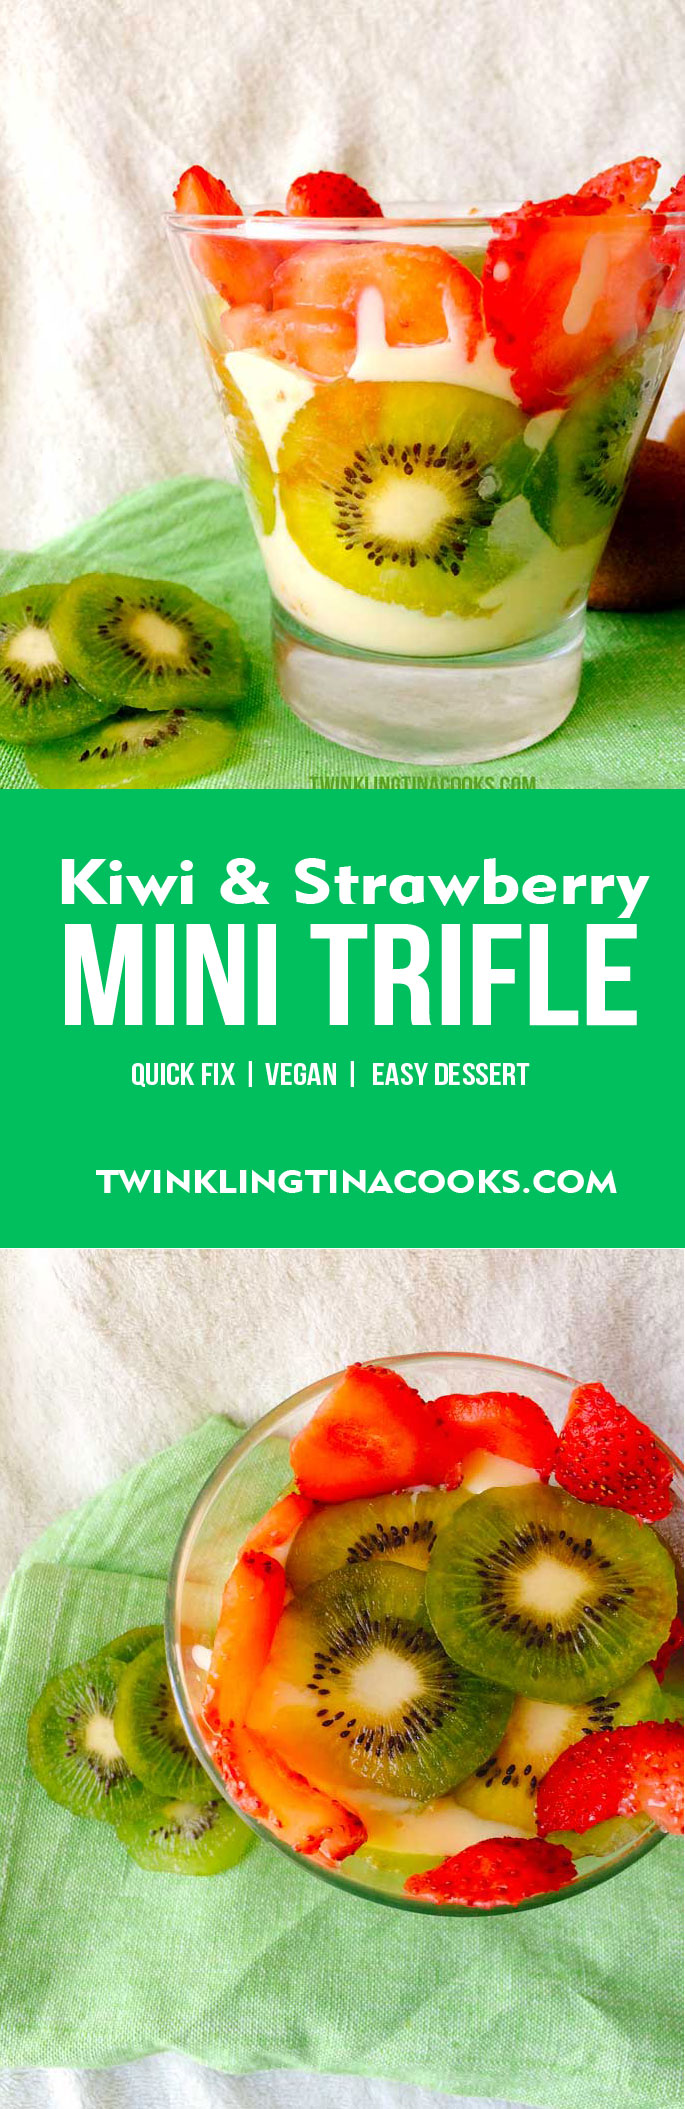 strawberry-kiwi-trifle-recipe-EASY-PIN